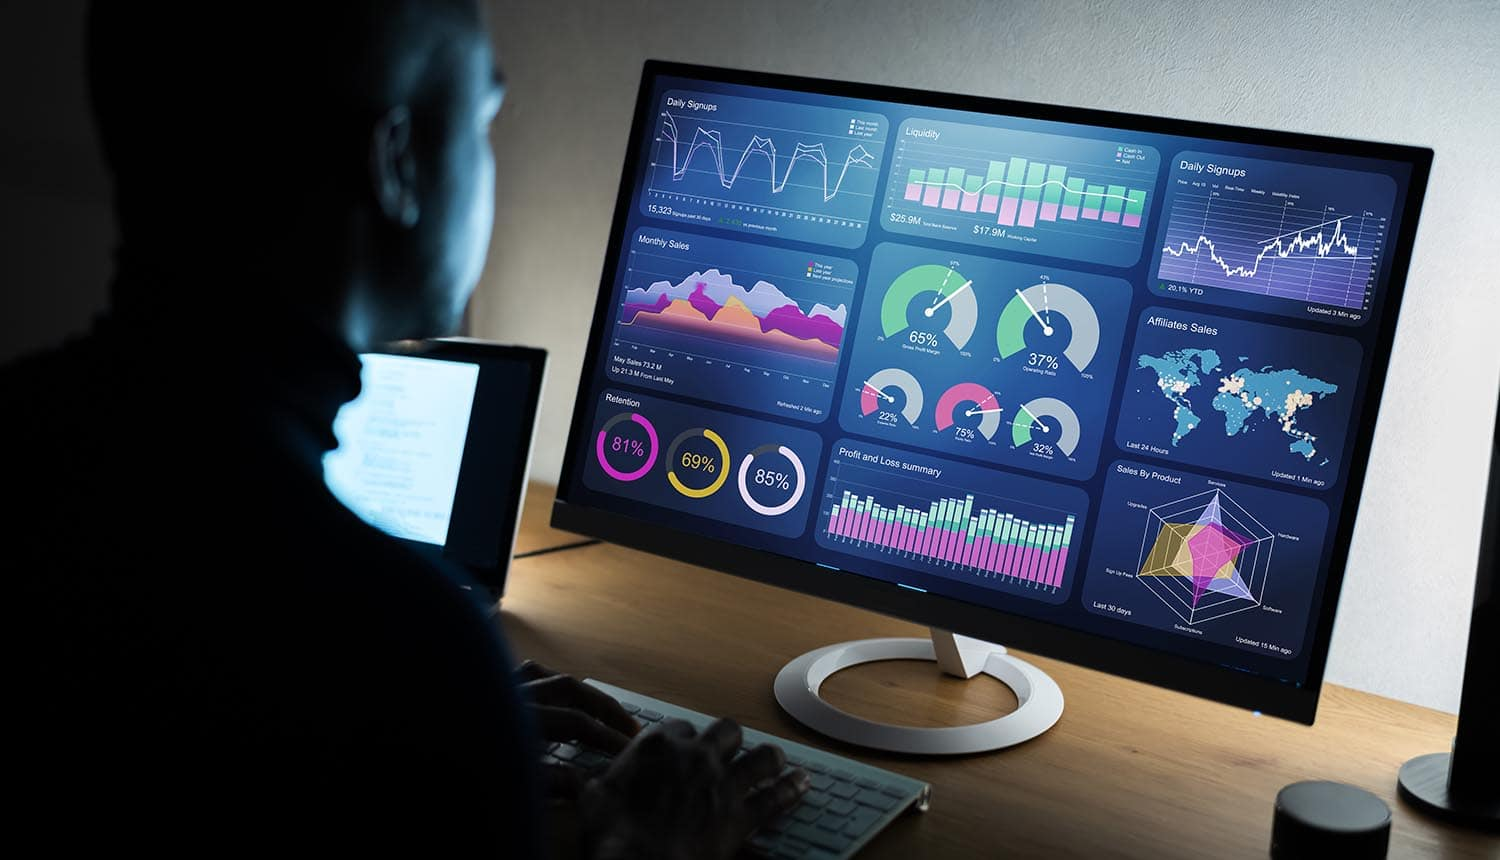 Analyst working late using dashboard to look at SIEM rules and threat coverage